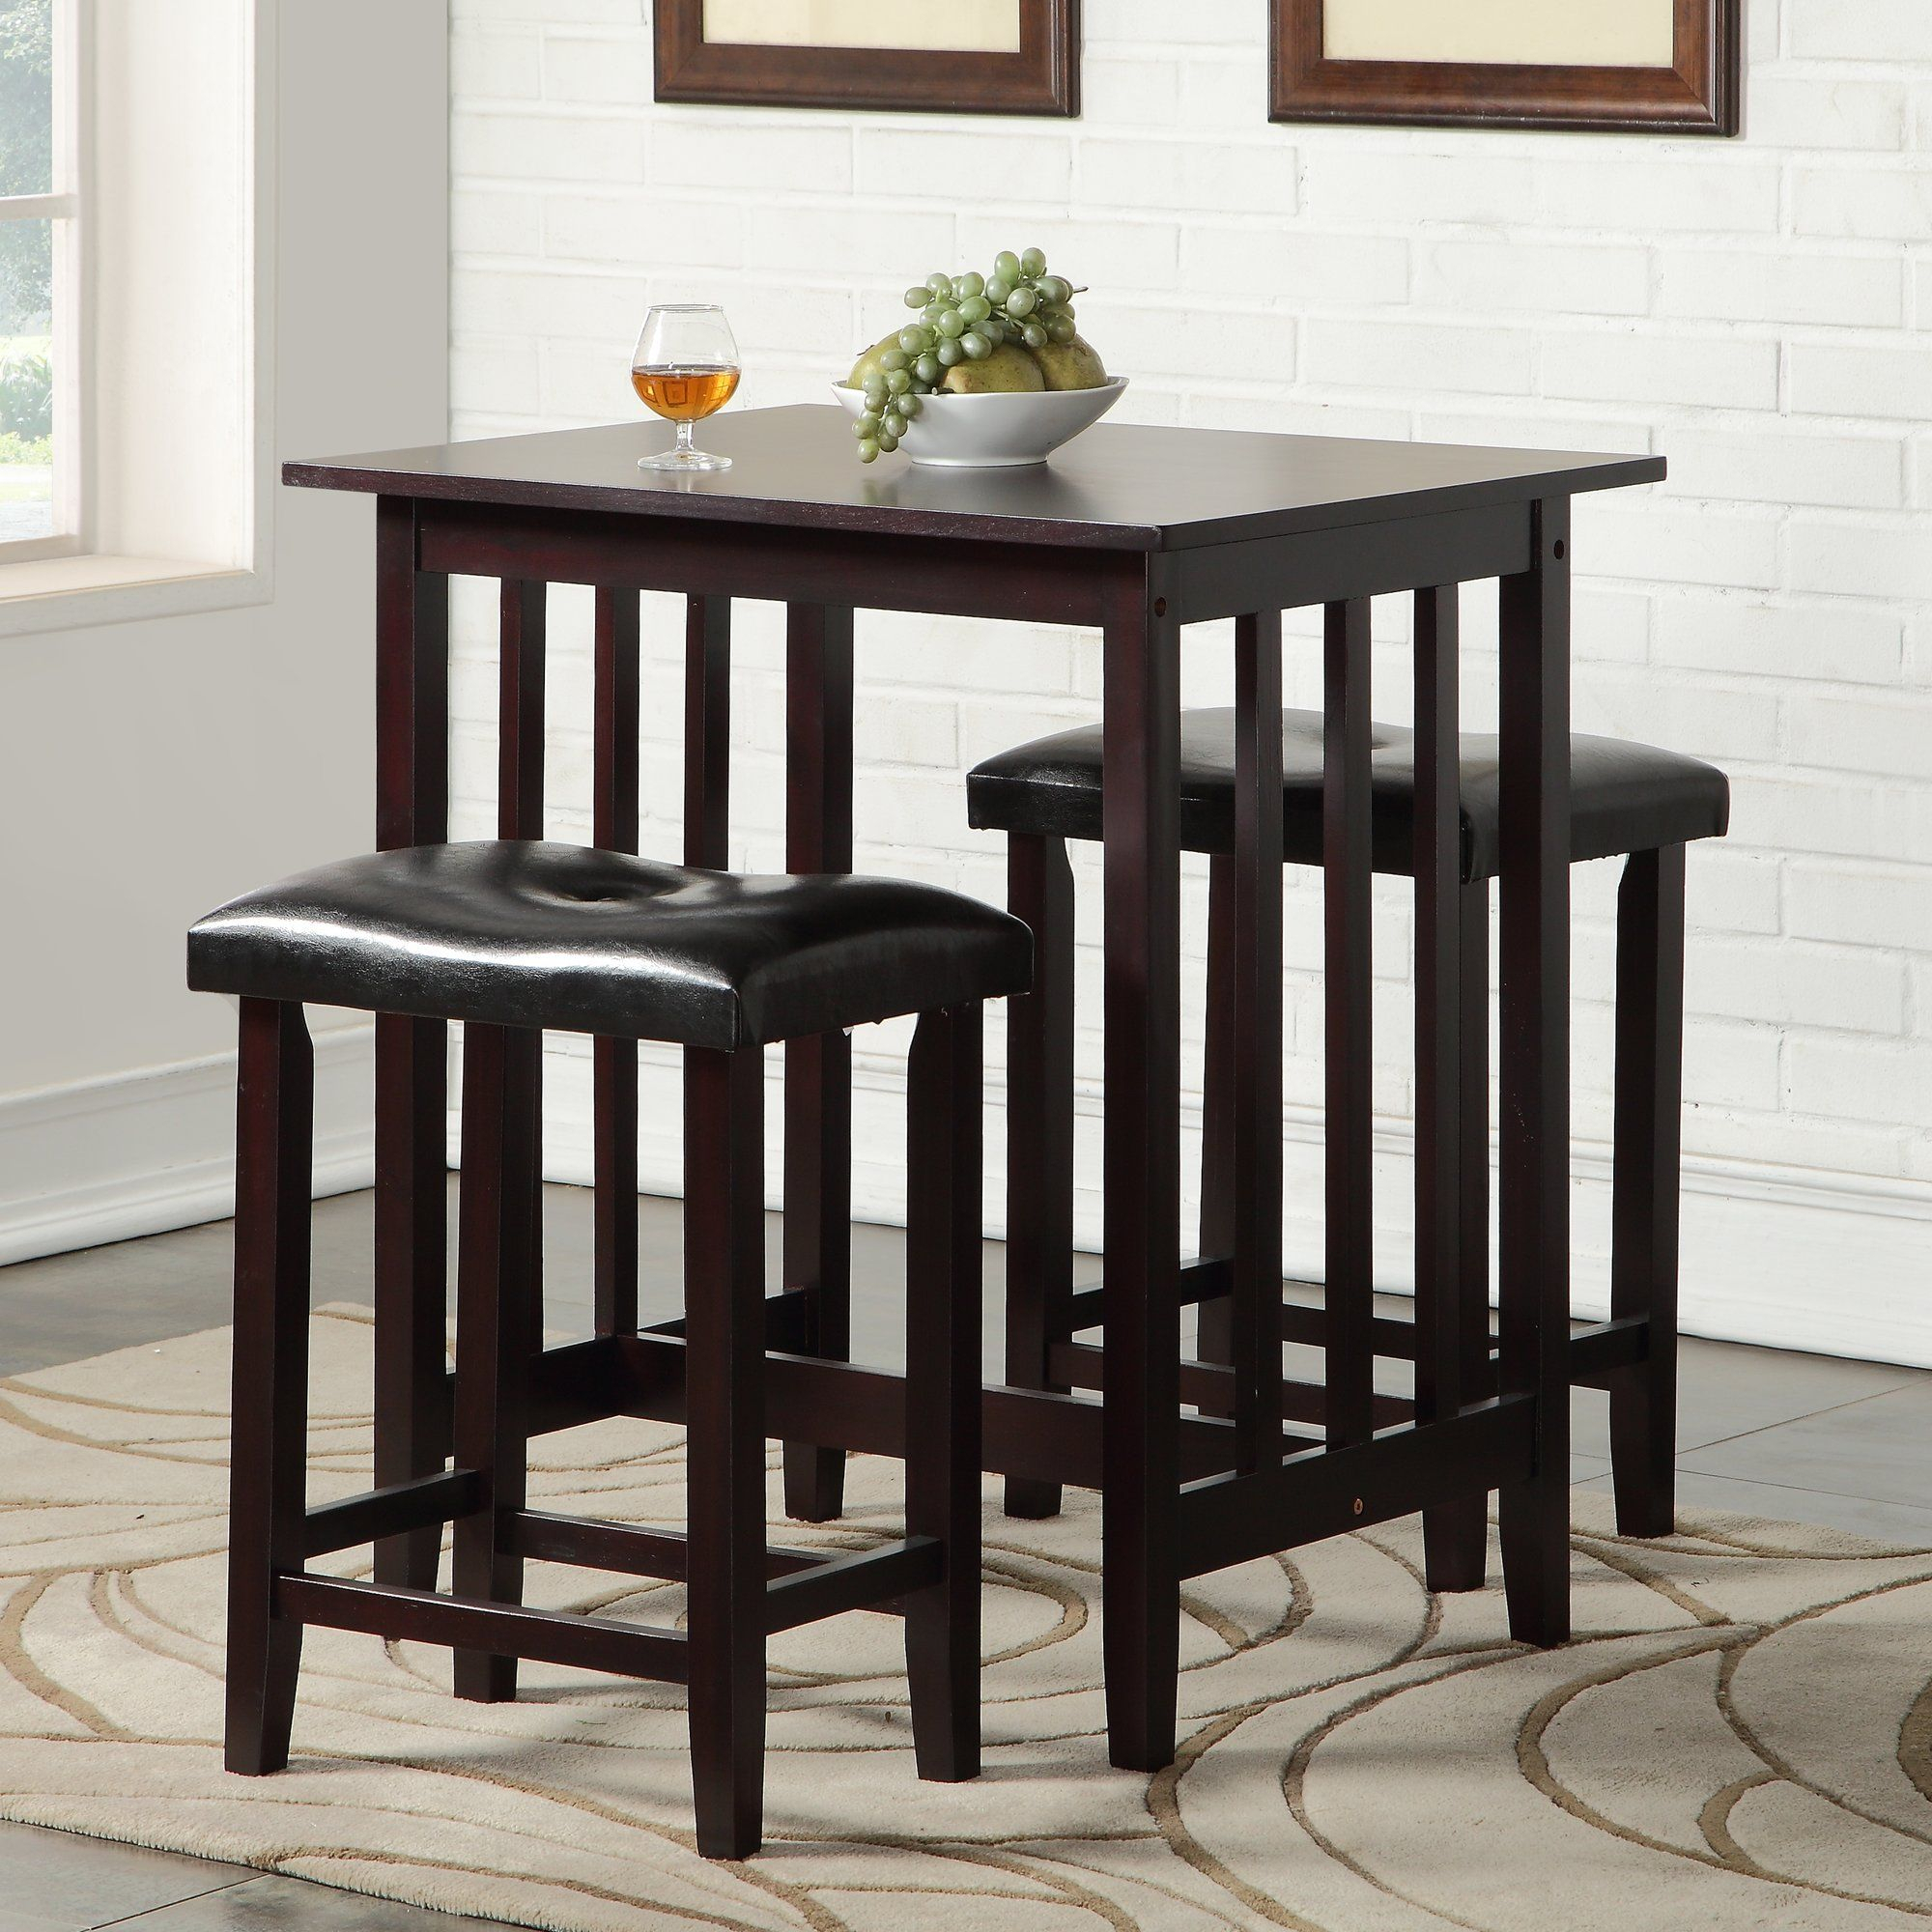 Richland 3 Piece Counter Height Pub Table Set | Products | Pub Table In Most Recent Bettencourt 3 Piece Counter Height Dining Sets (View 10 of 20)